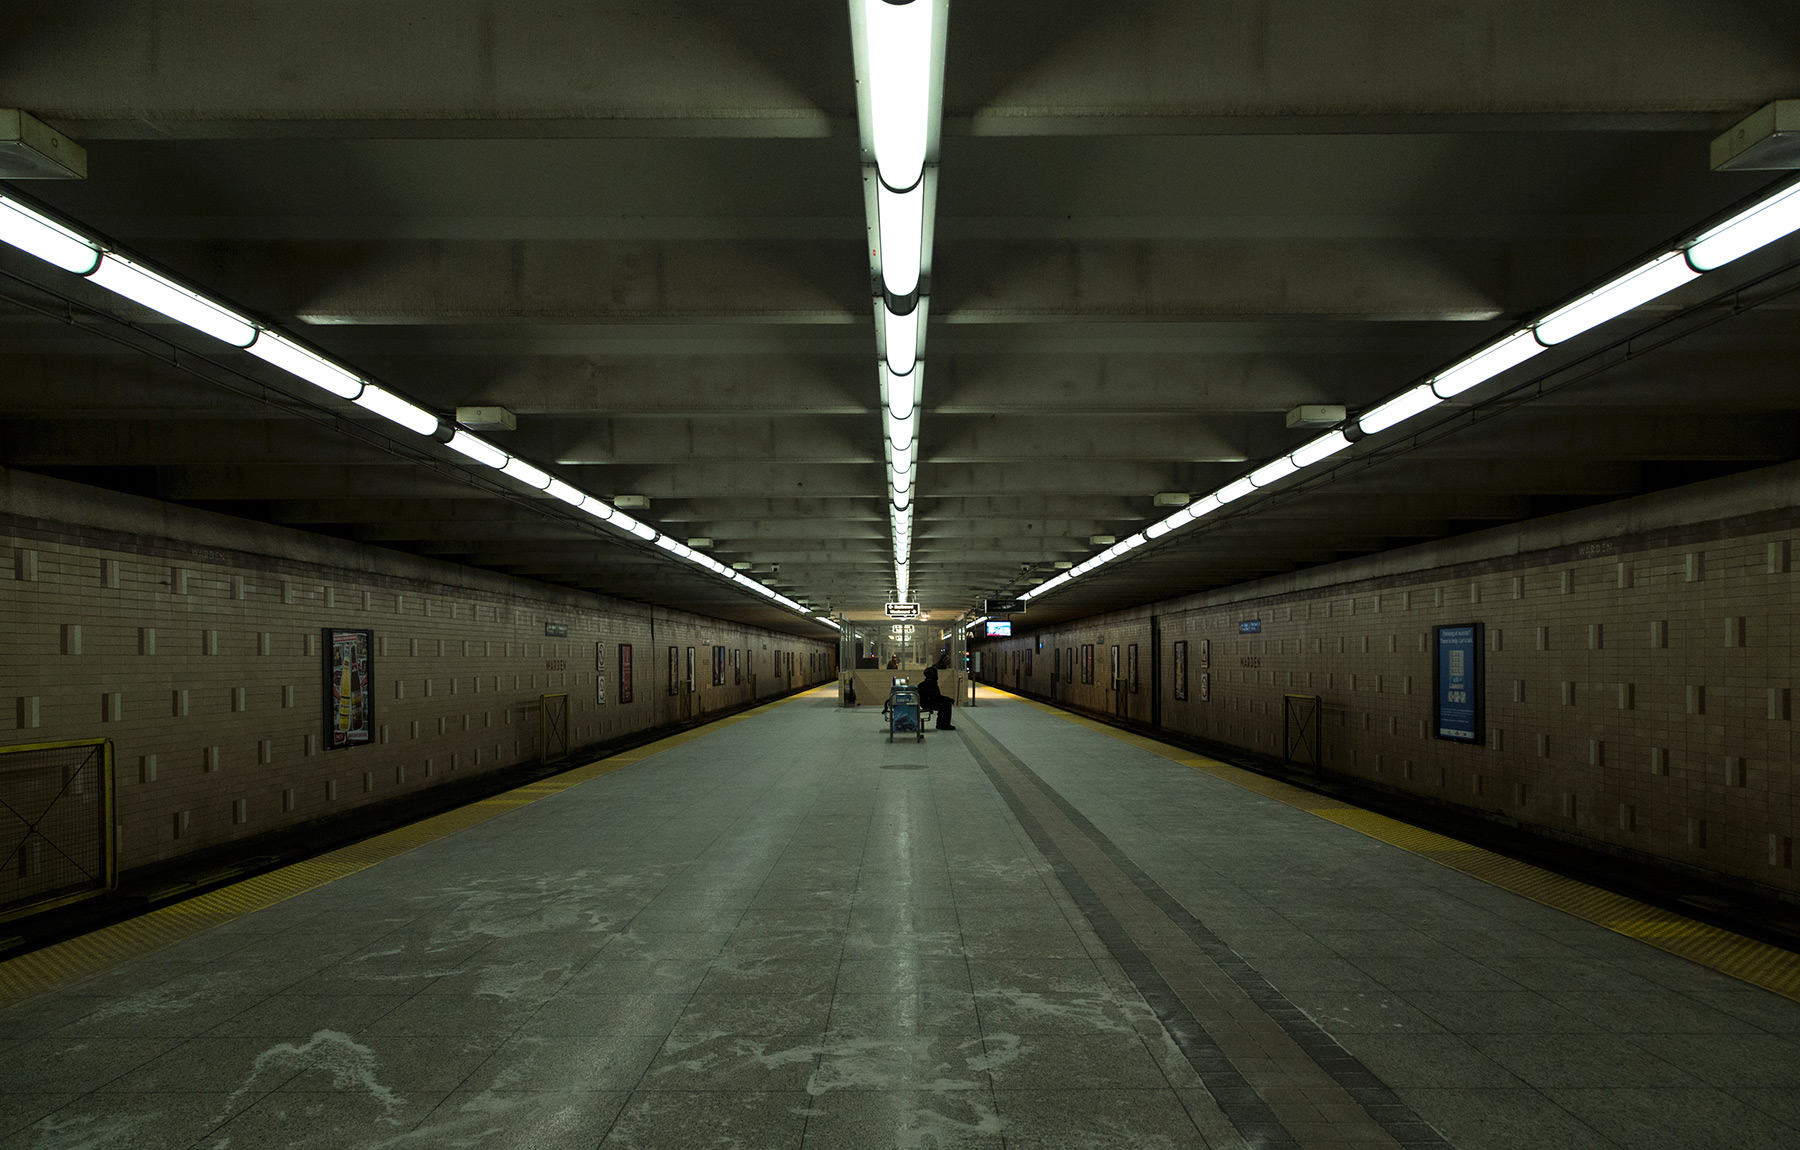 20150127.  The length of Toronto's subway stations is made appar